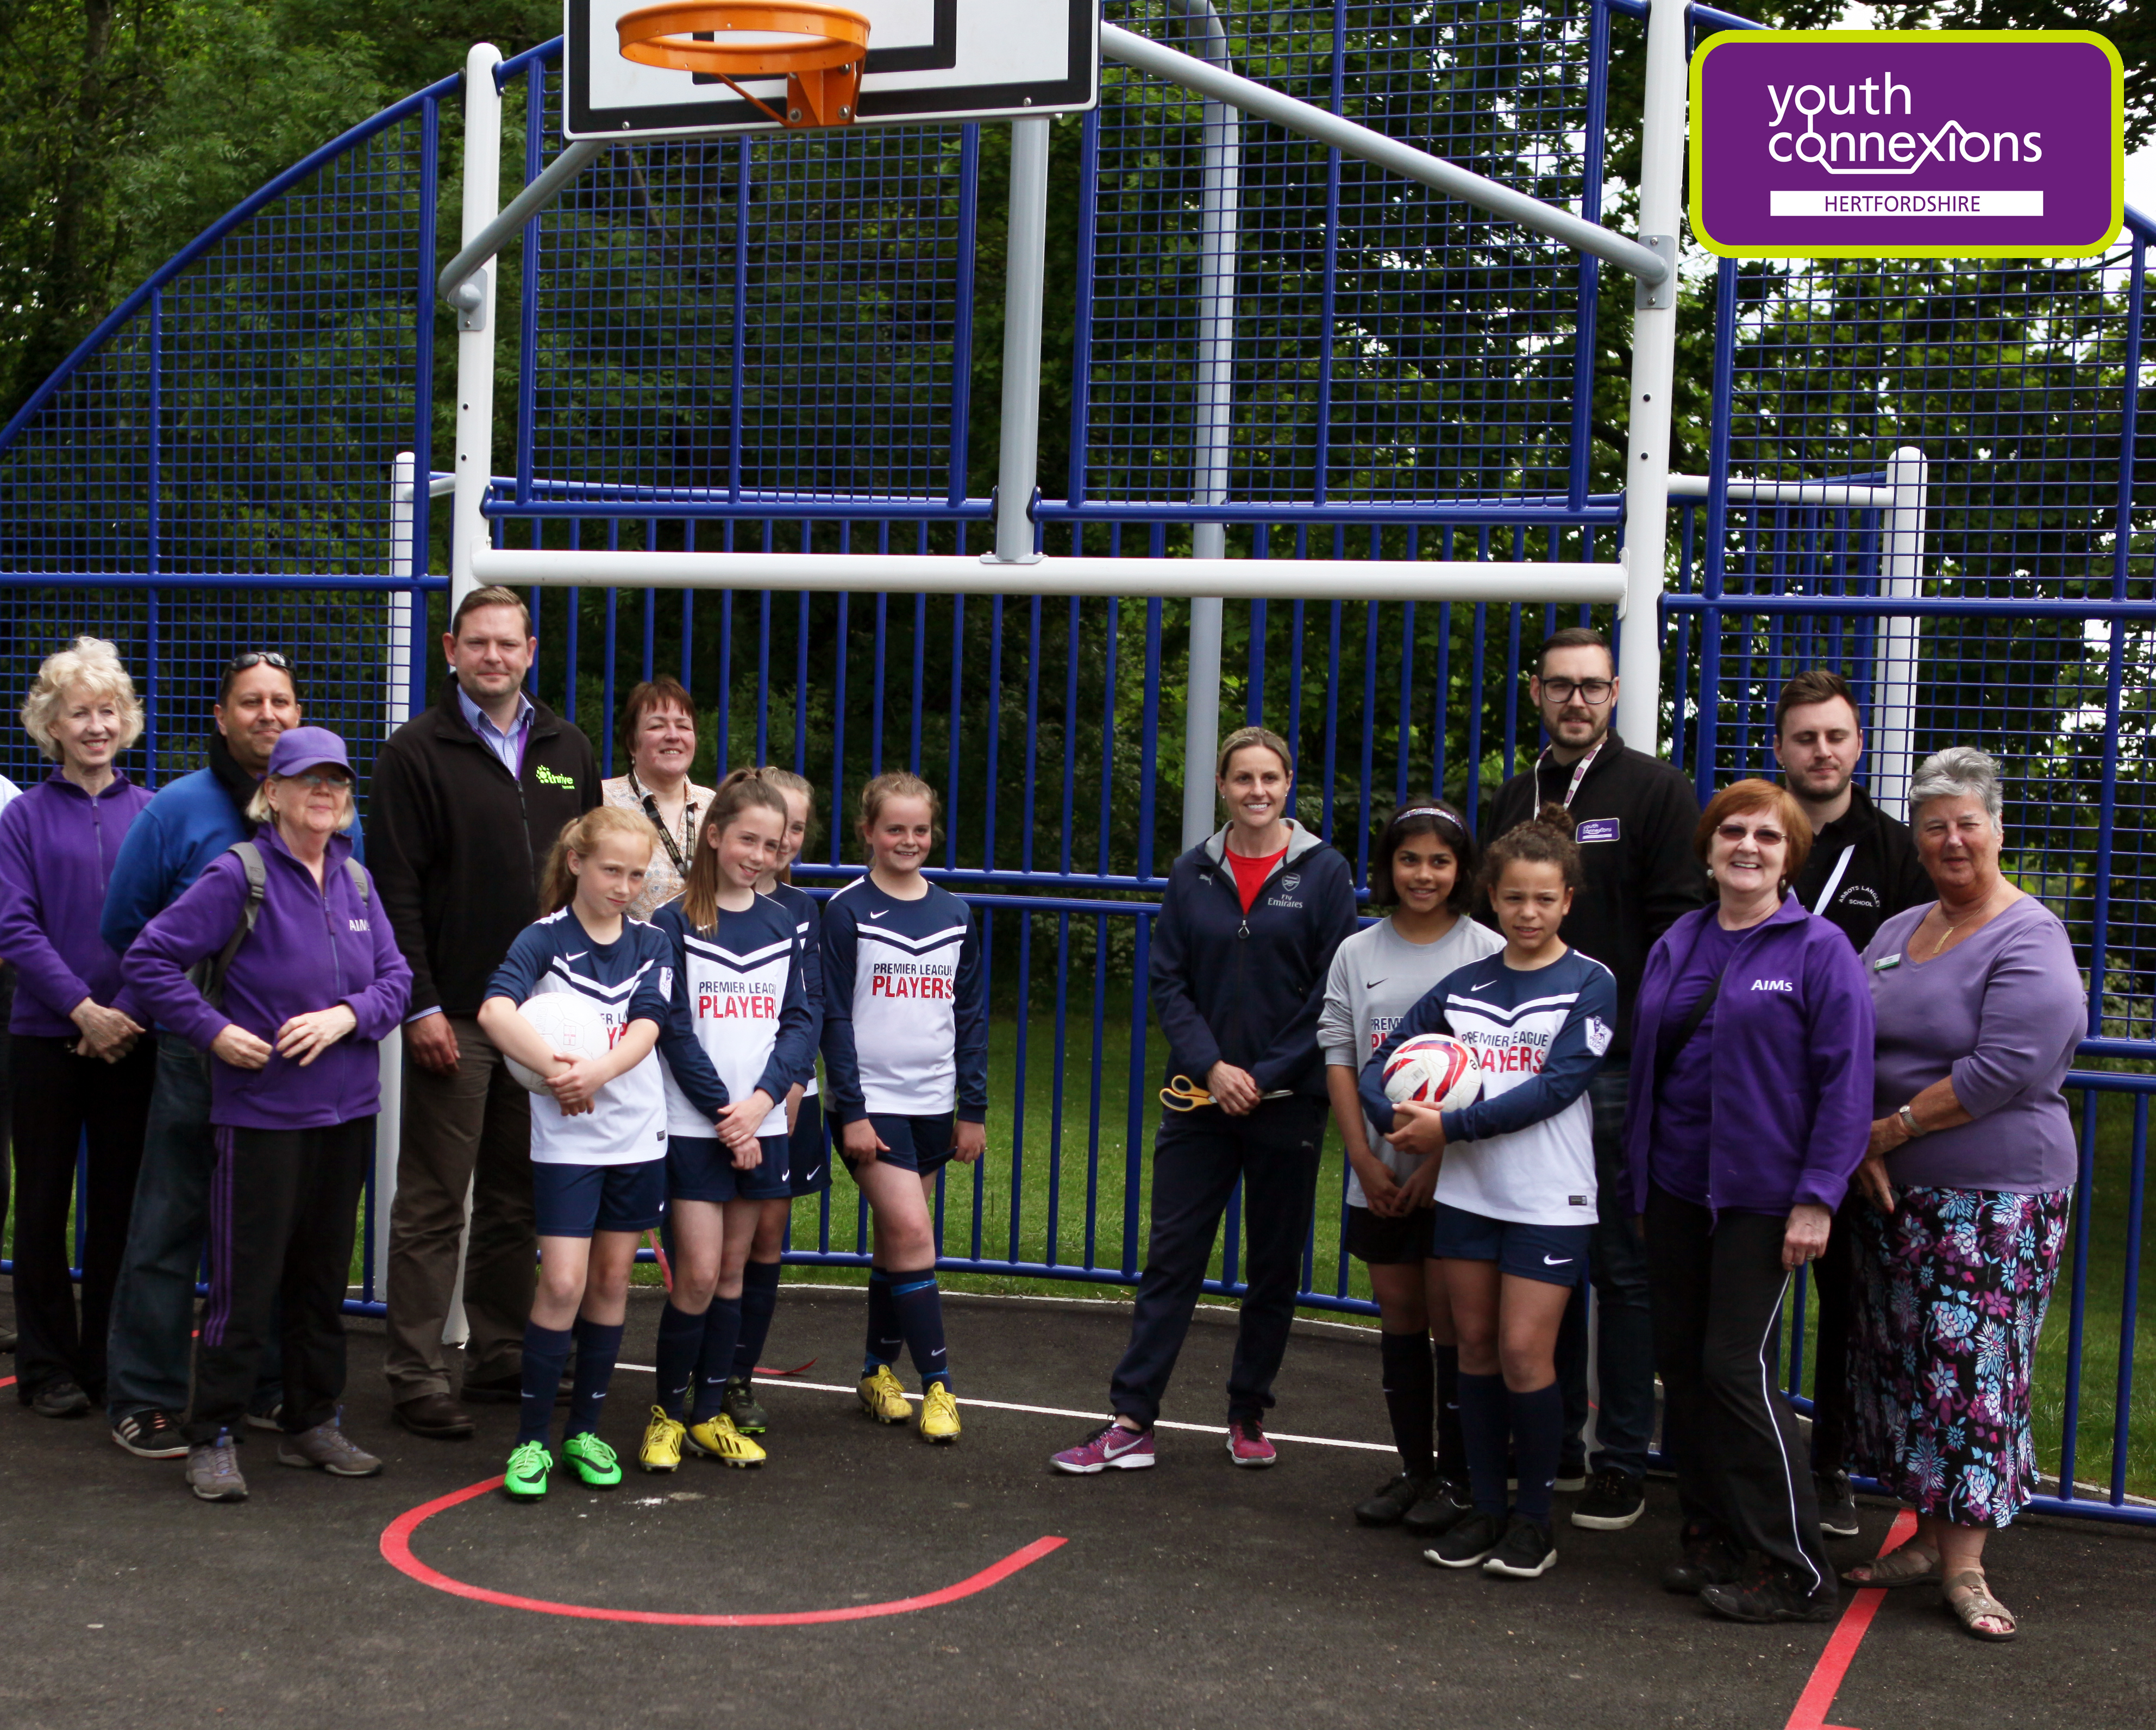 Kelly Smith MBE launches new sports facility in Abbots Langley